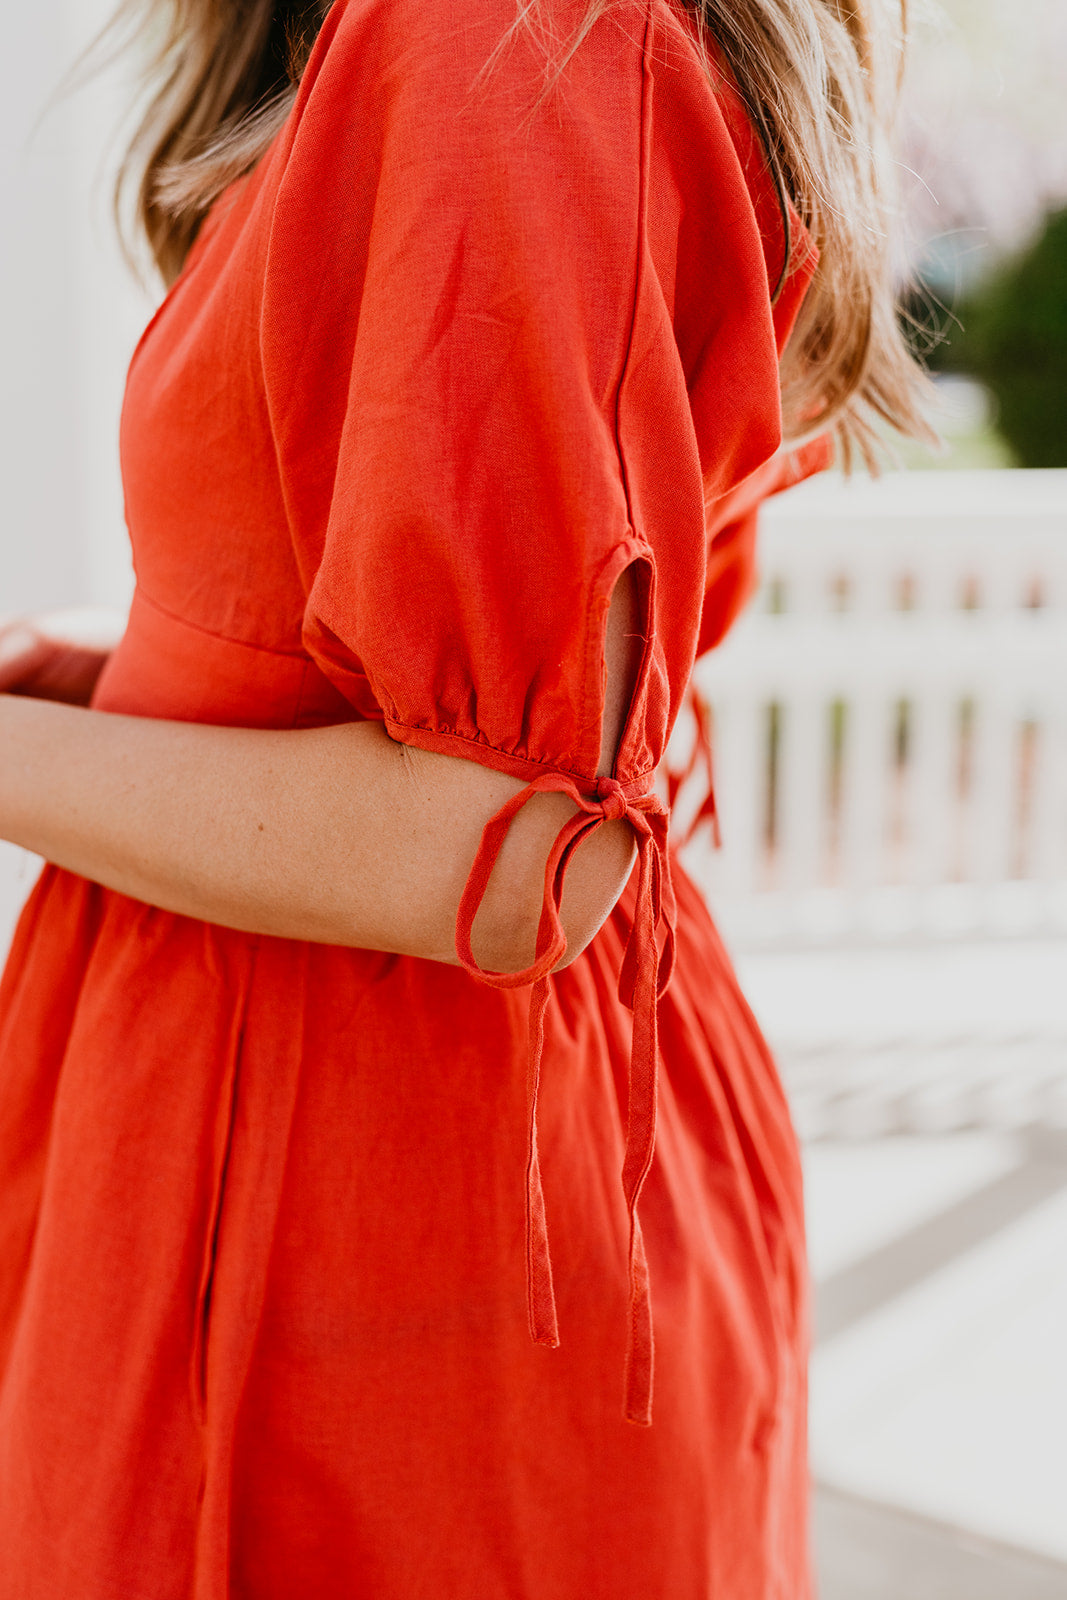 THE ONELLA MIDI DRESS IN ORANGE